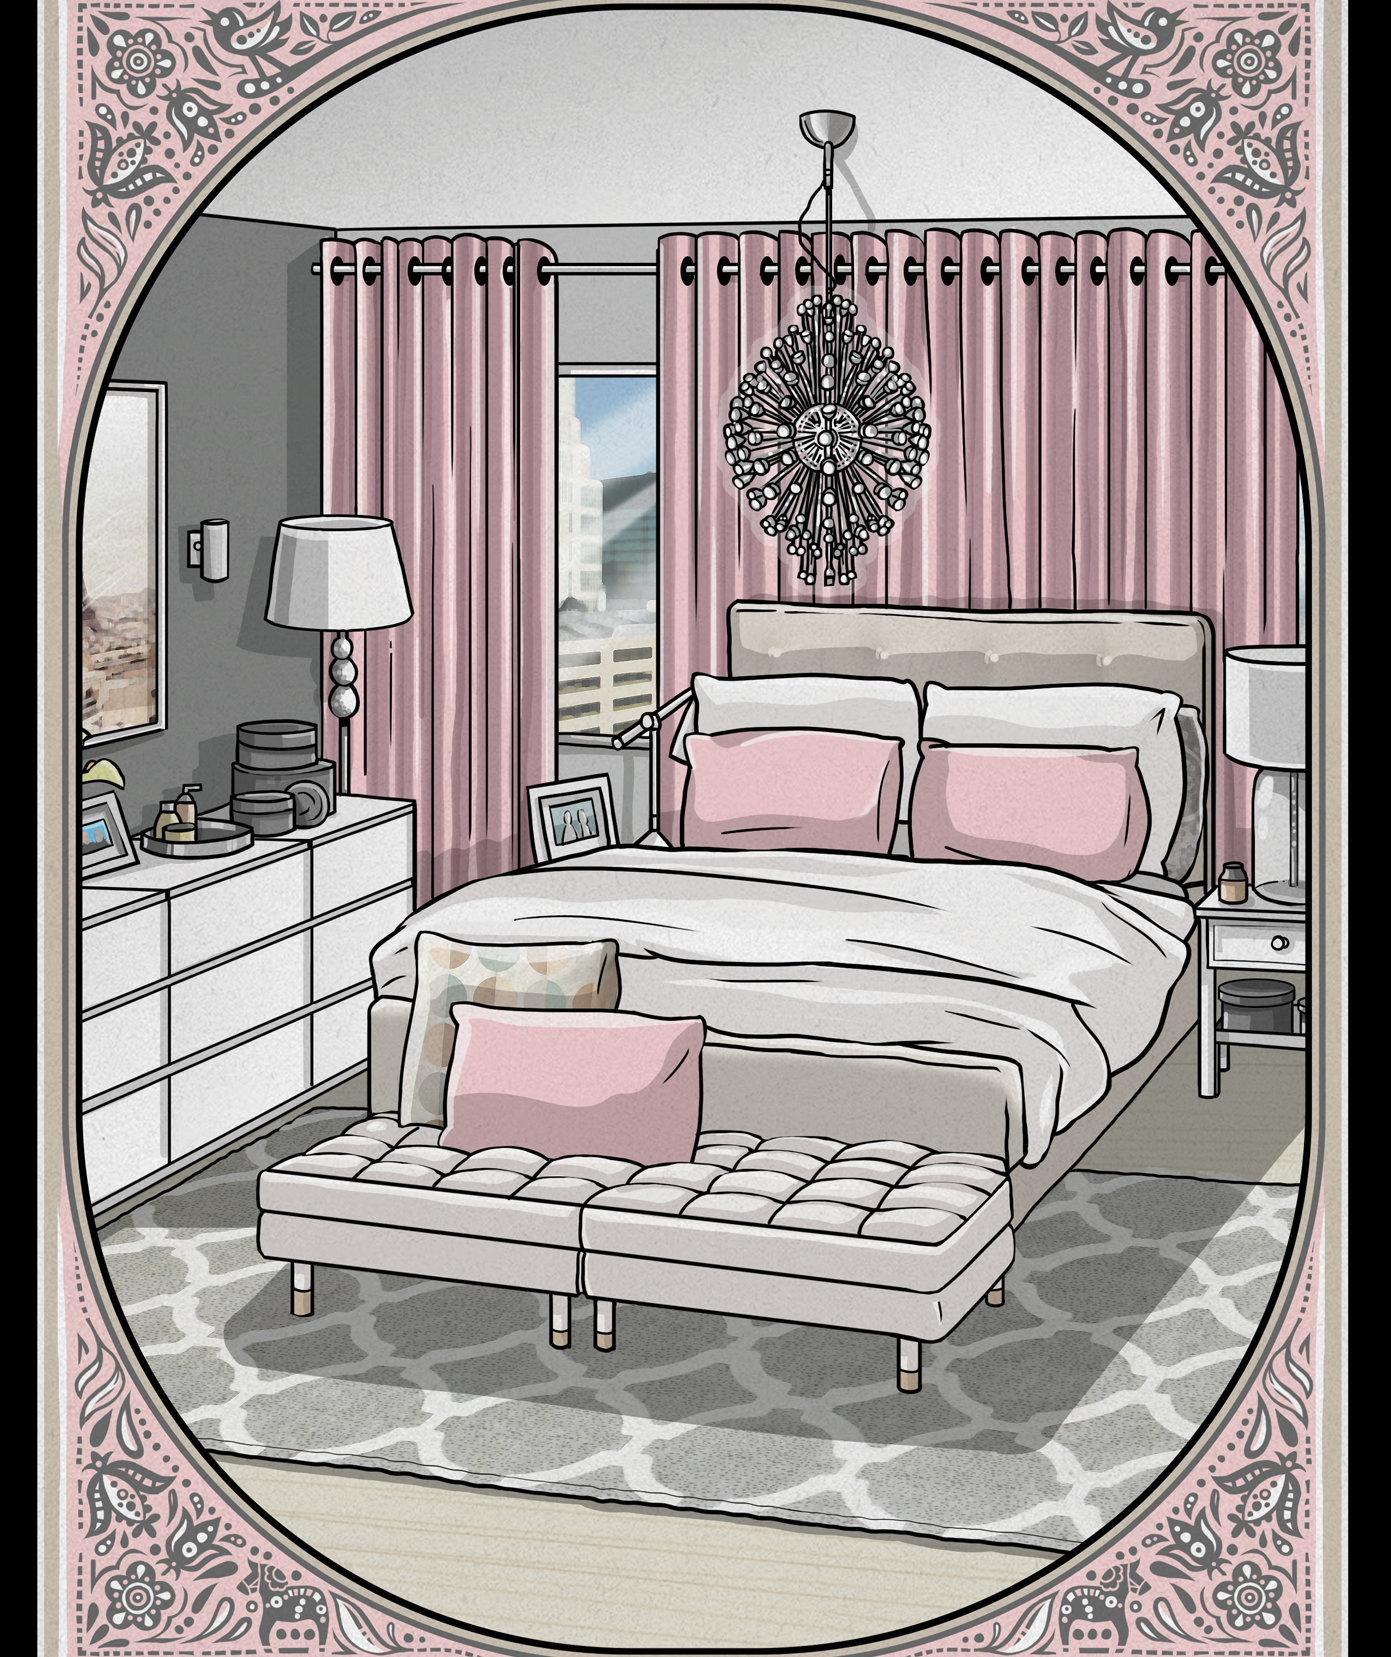 The IKEA Kama Sutra Will Help You Find Your Bedroom Nirvana–and